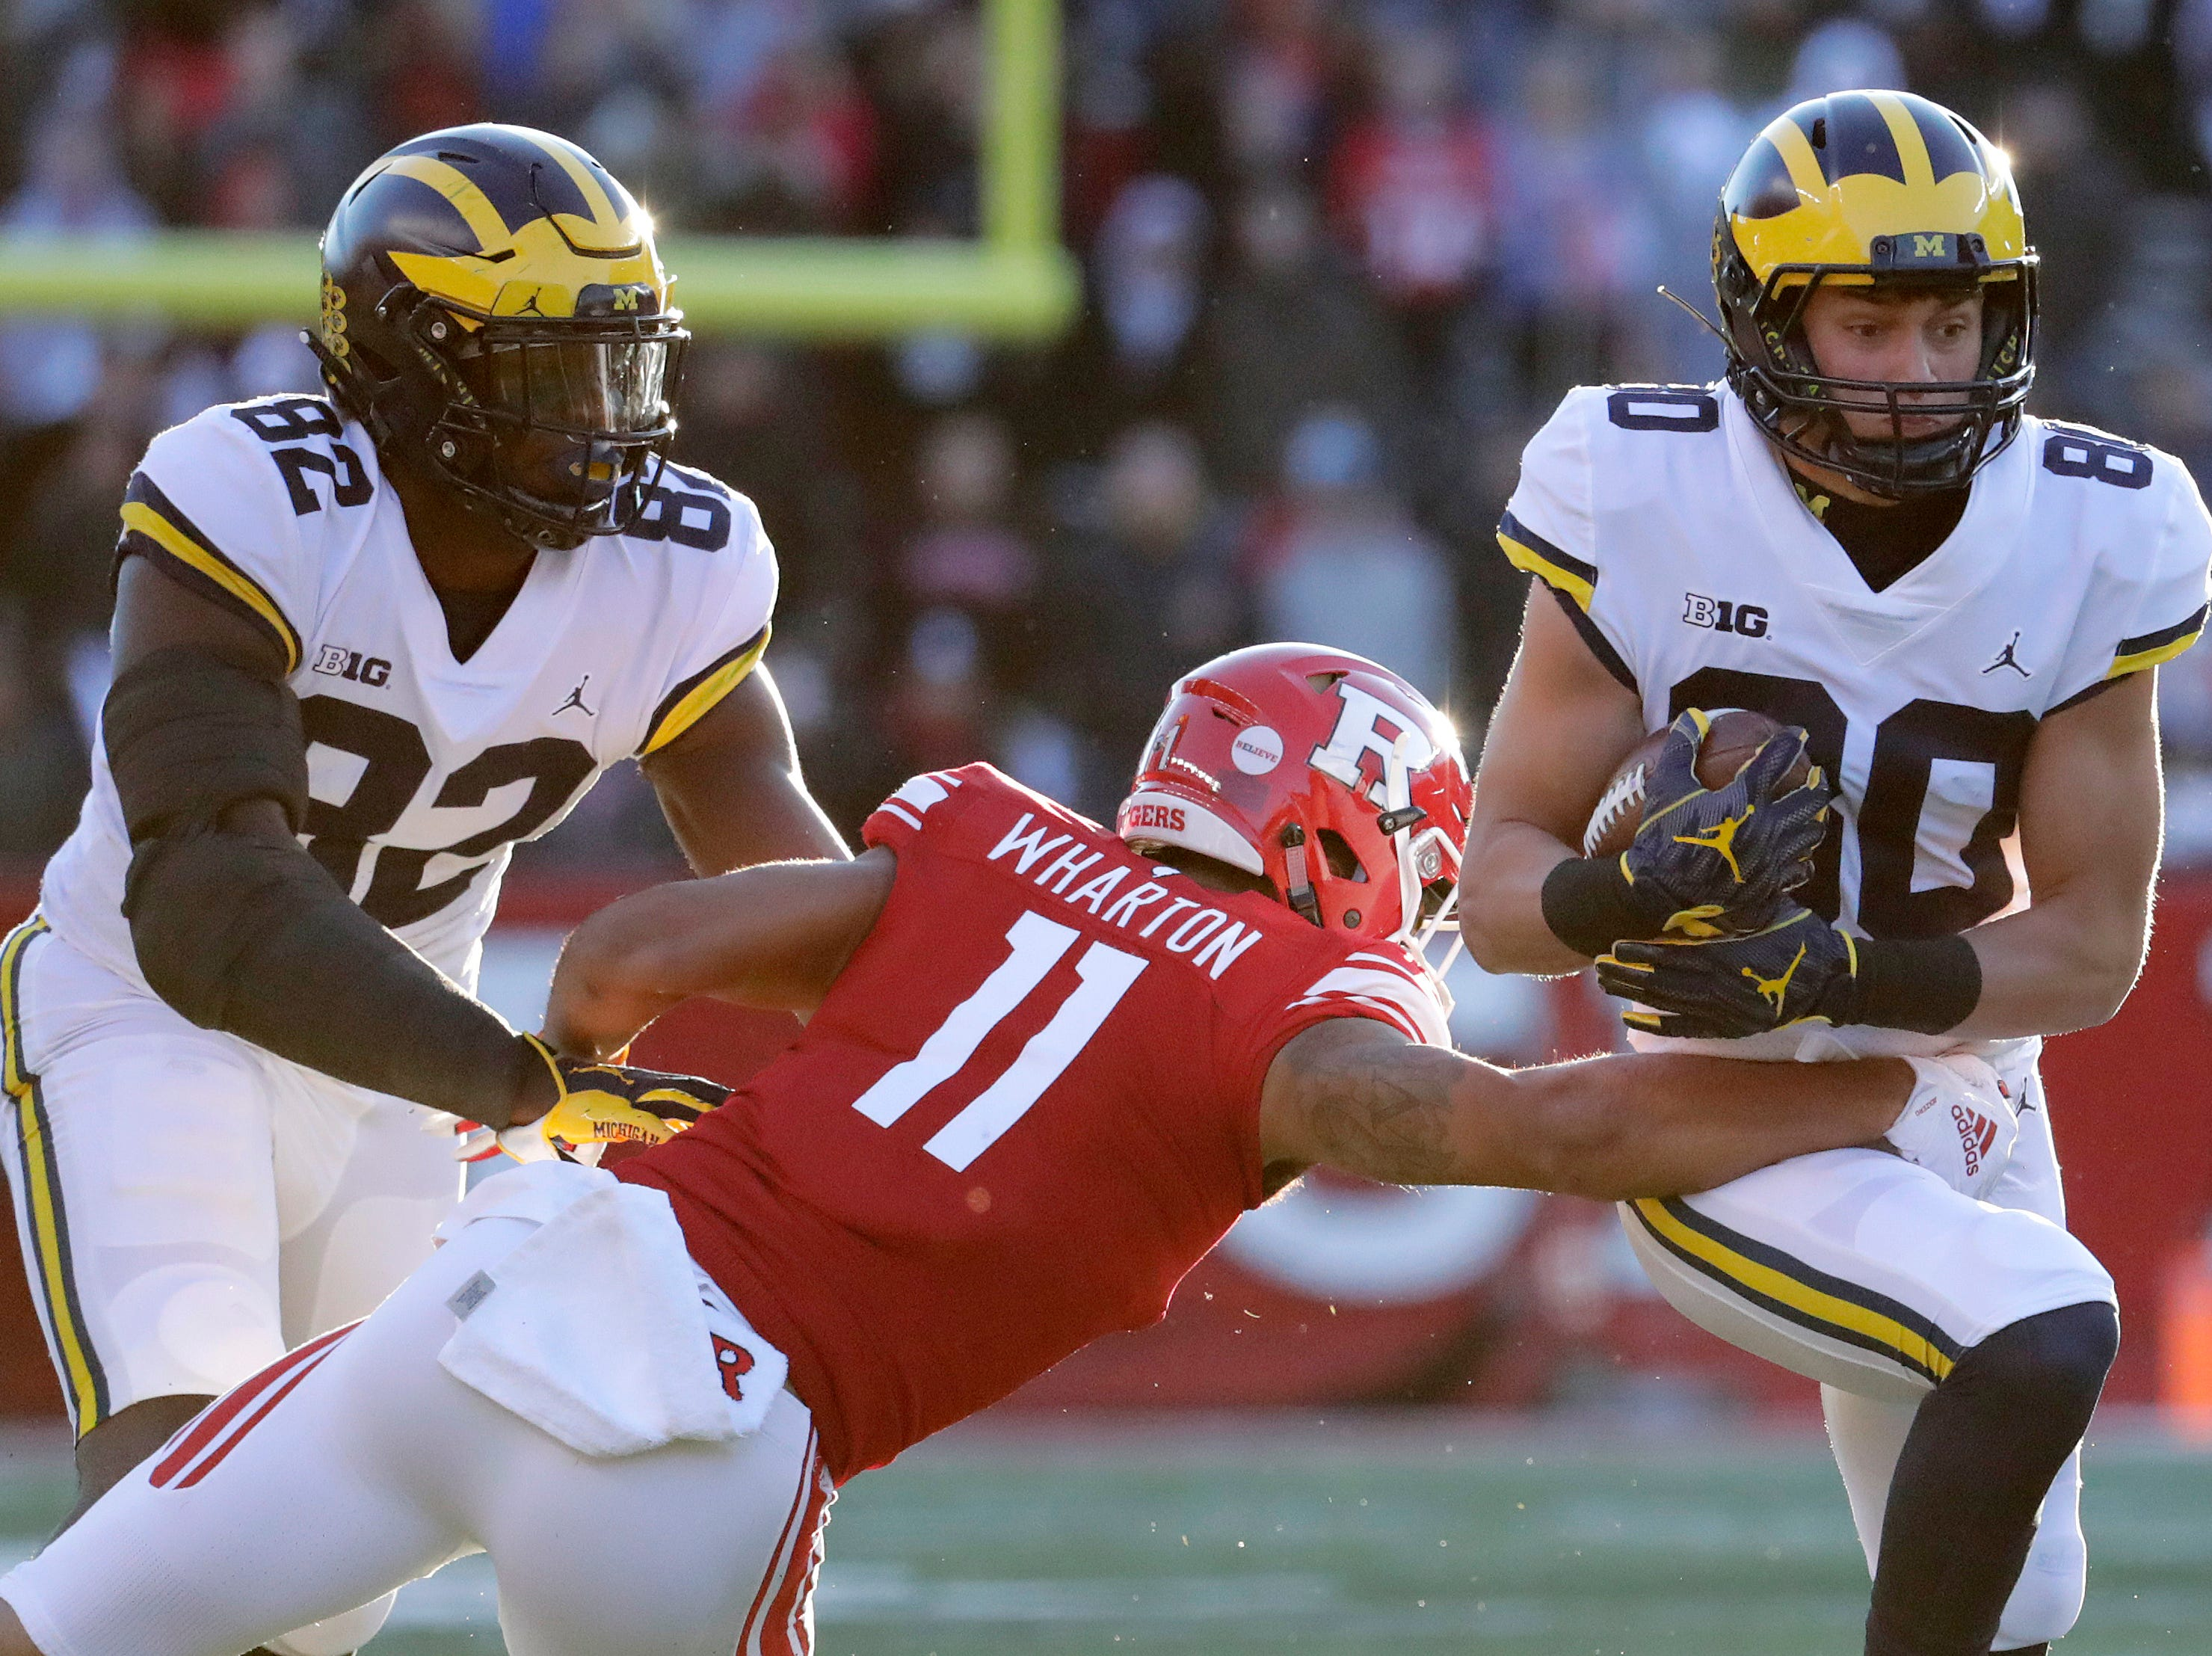 Michigan wide receiver Oliver Martin runs with the ball as Rutgers defensive back Isaiah Wharton tries to wrap him up.